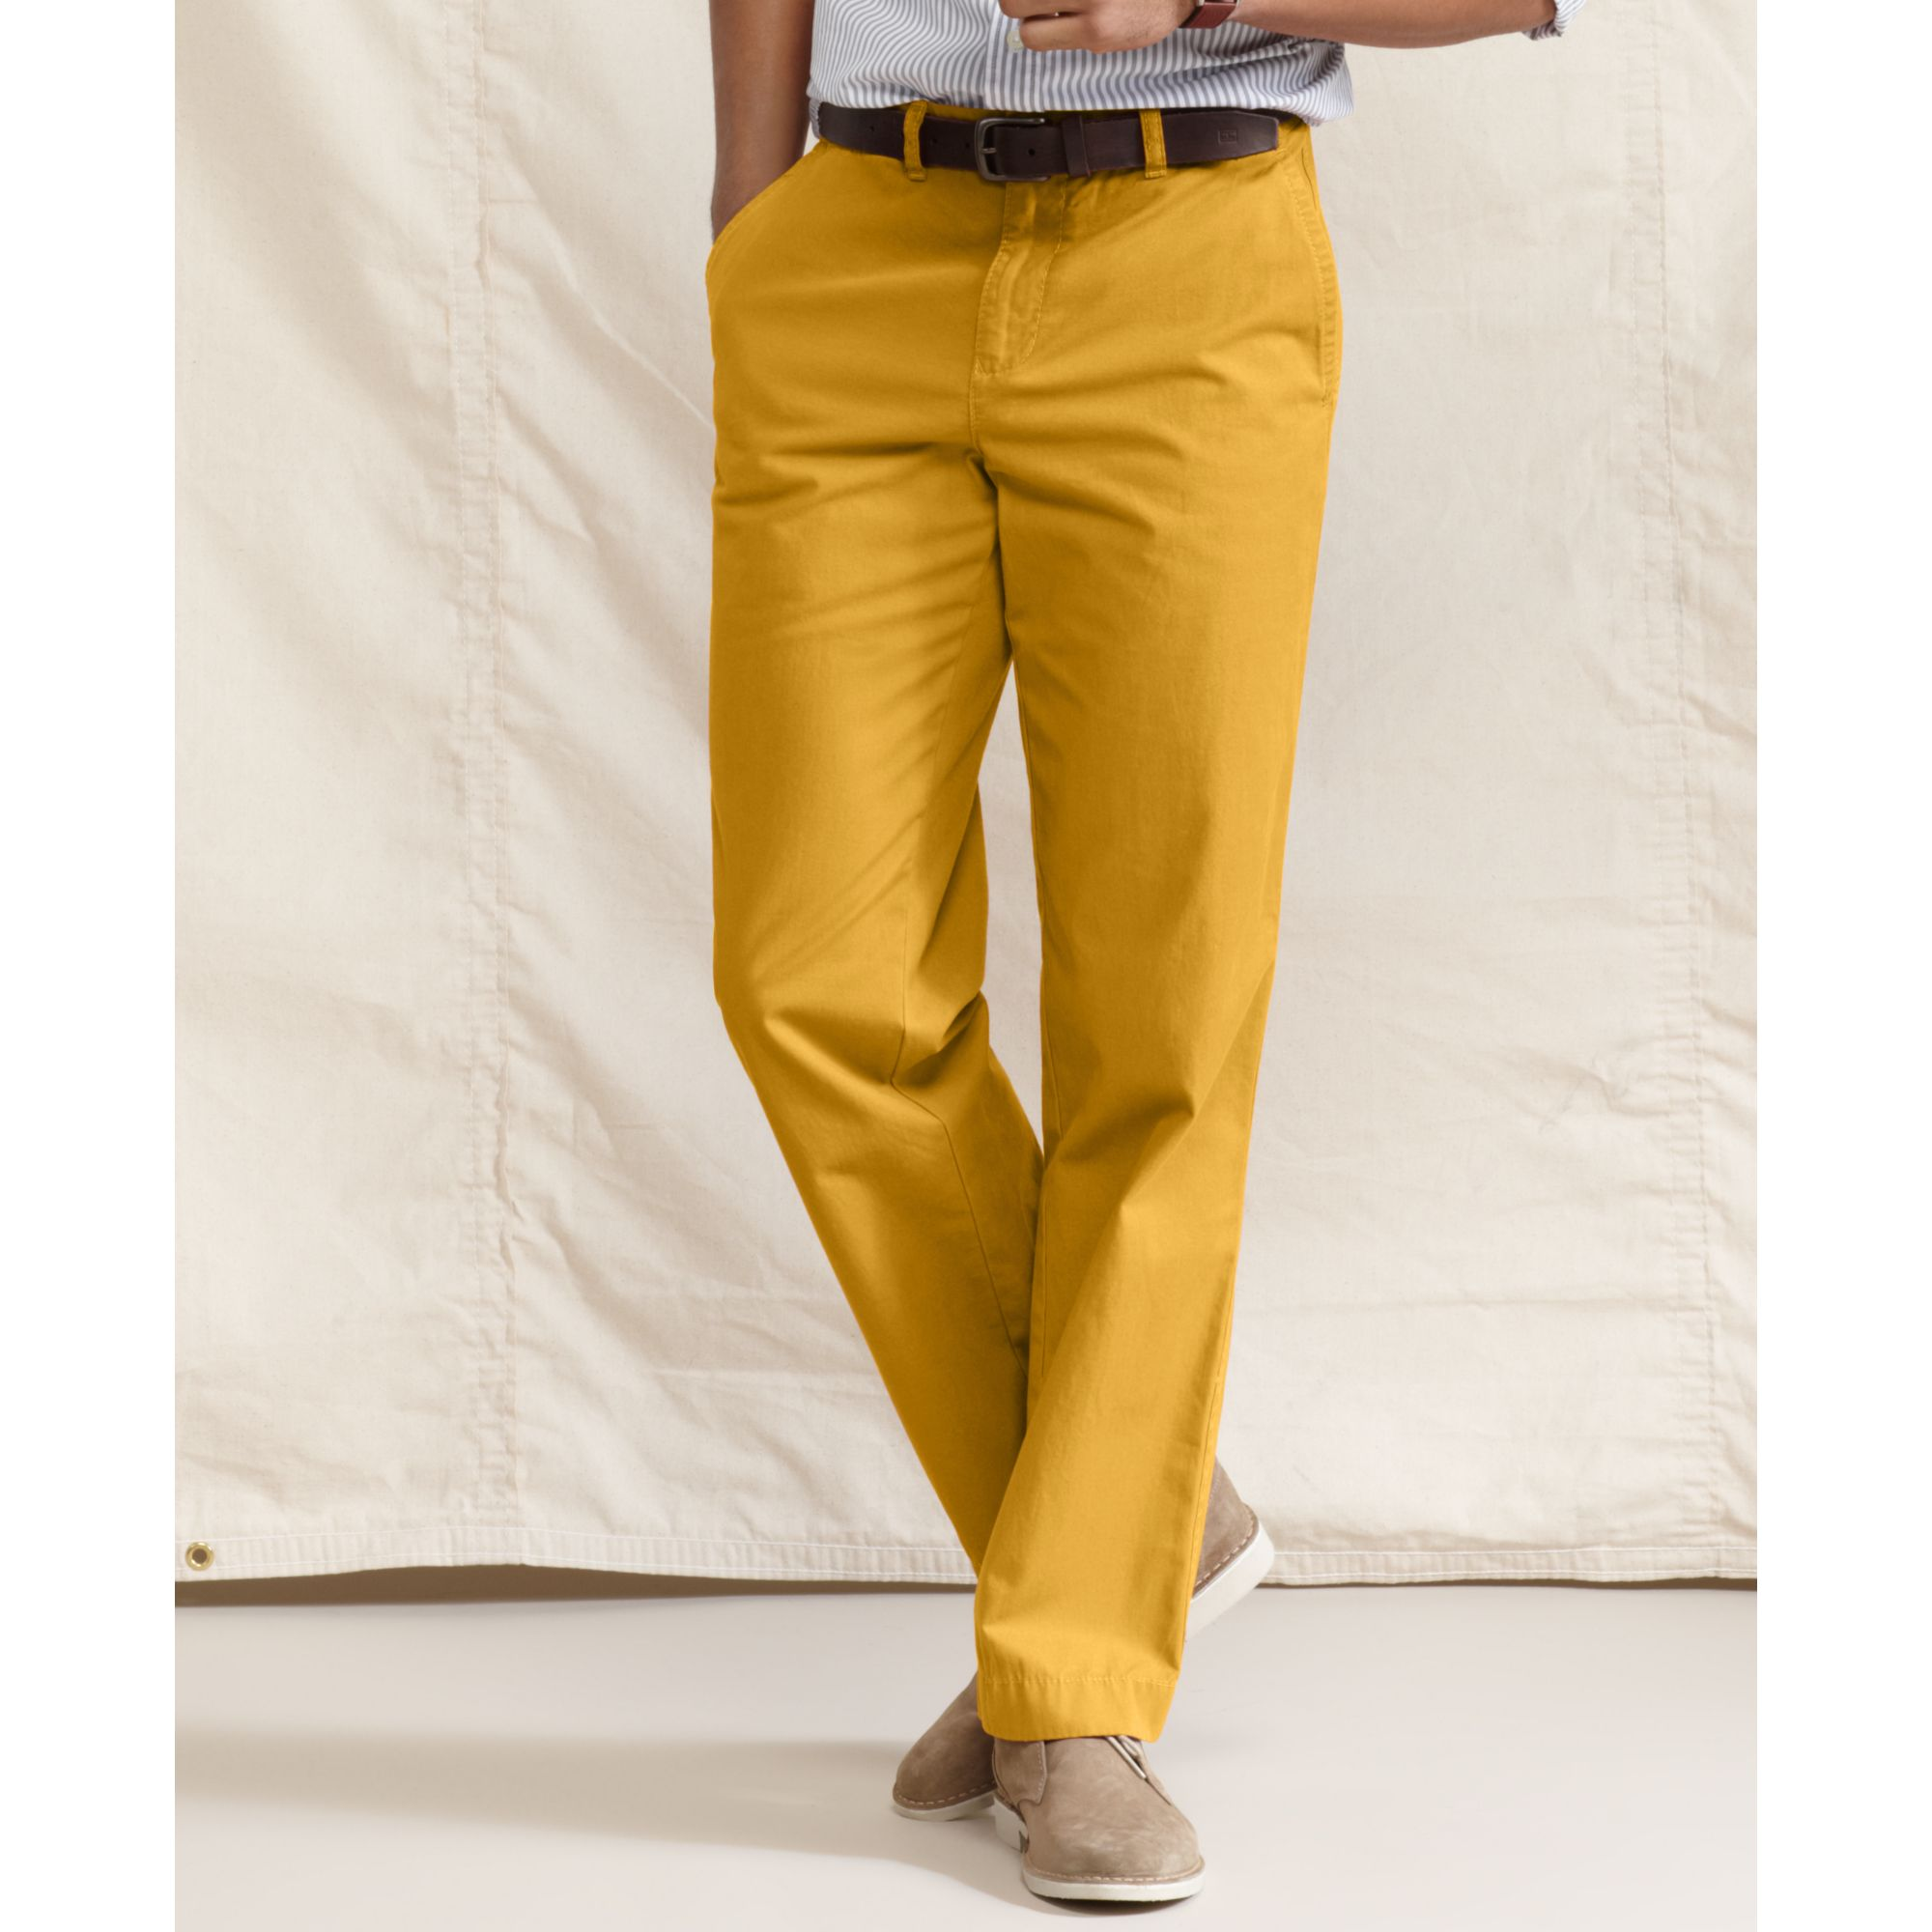 00ef93089 Tommy Hilfiger Graduate Slim Fit Chino Pants in Yellow for Men - Lyst